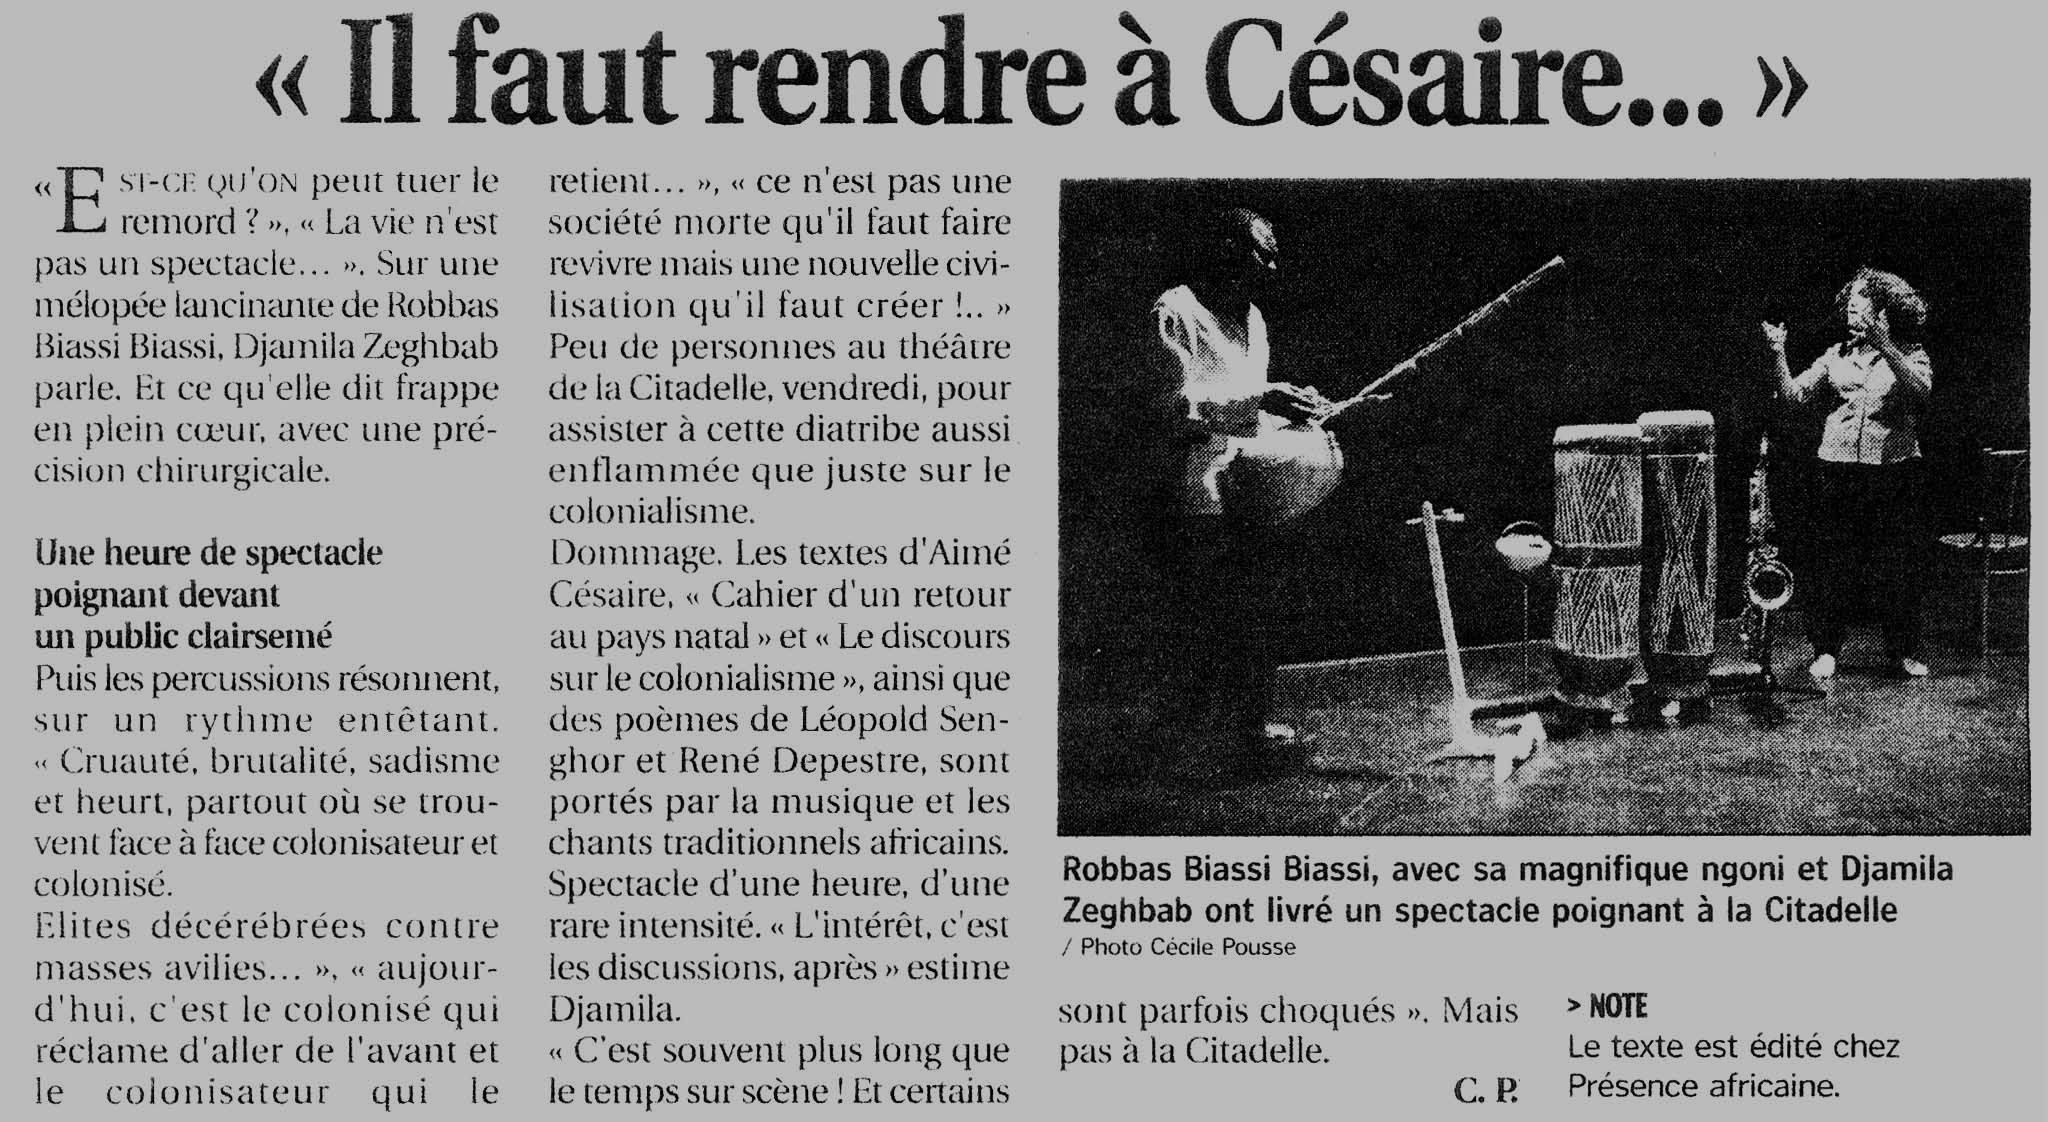 article-cesairebourg